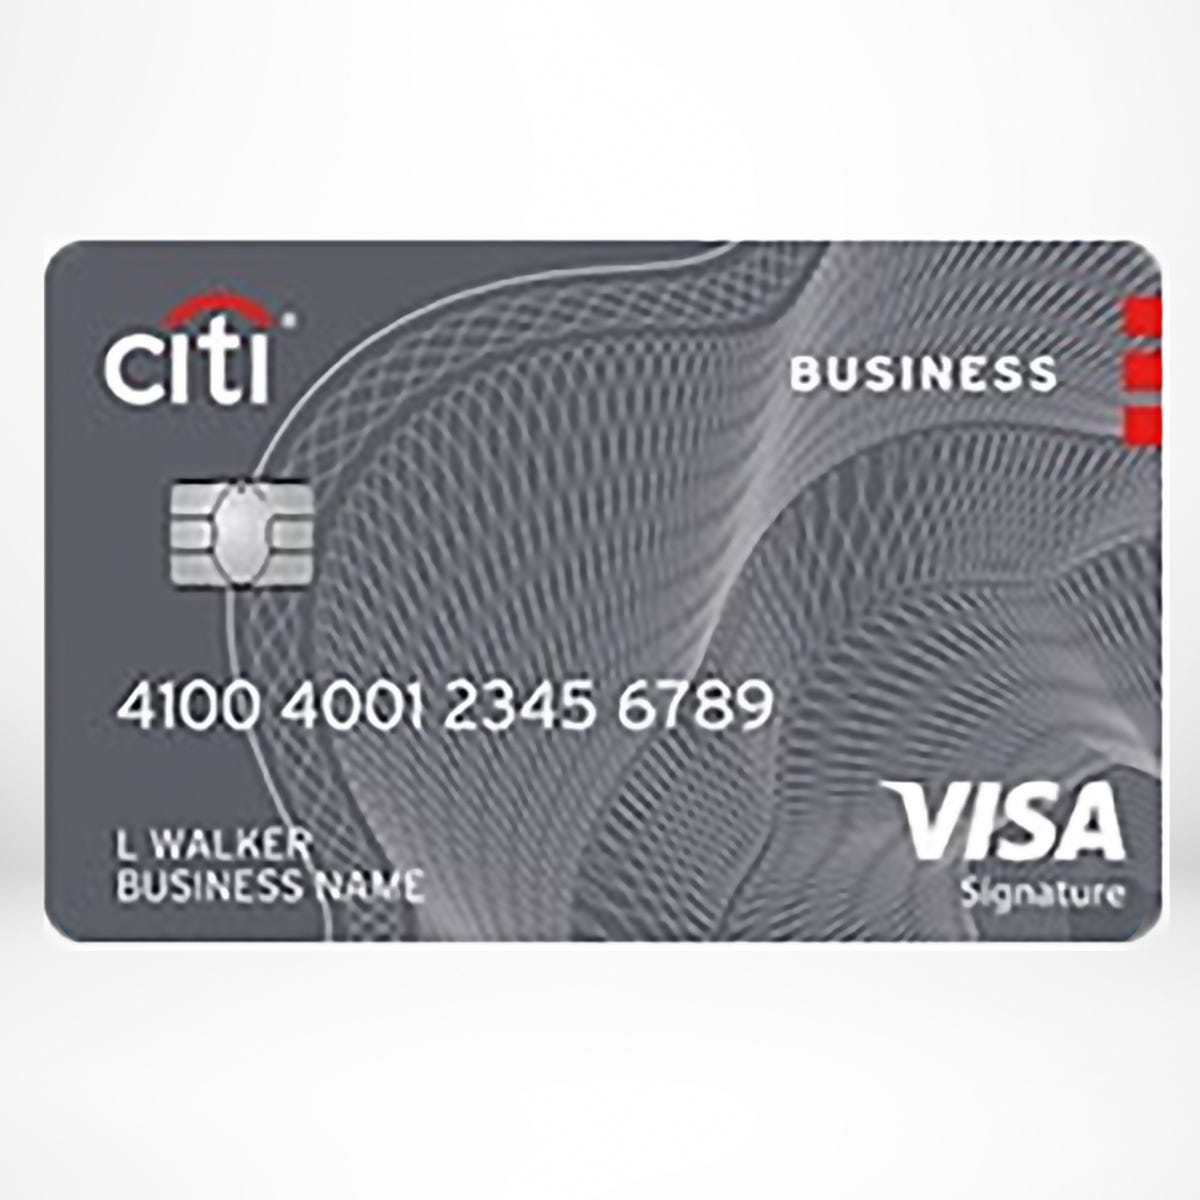 10 key things to know about the Costco Anywhere Visa Card ZDNet